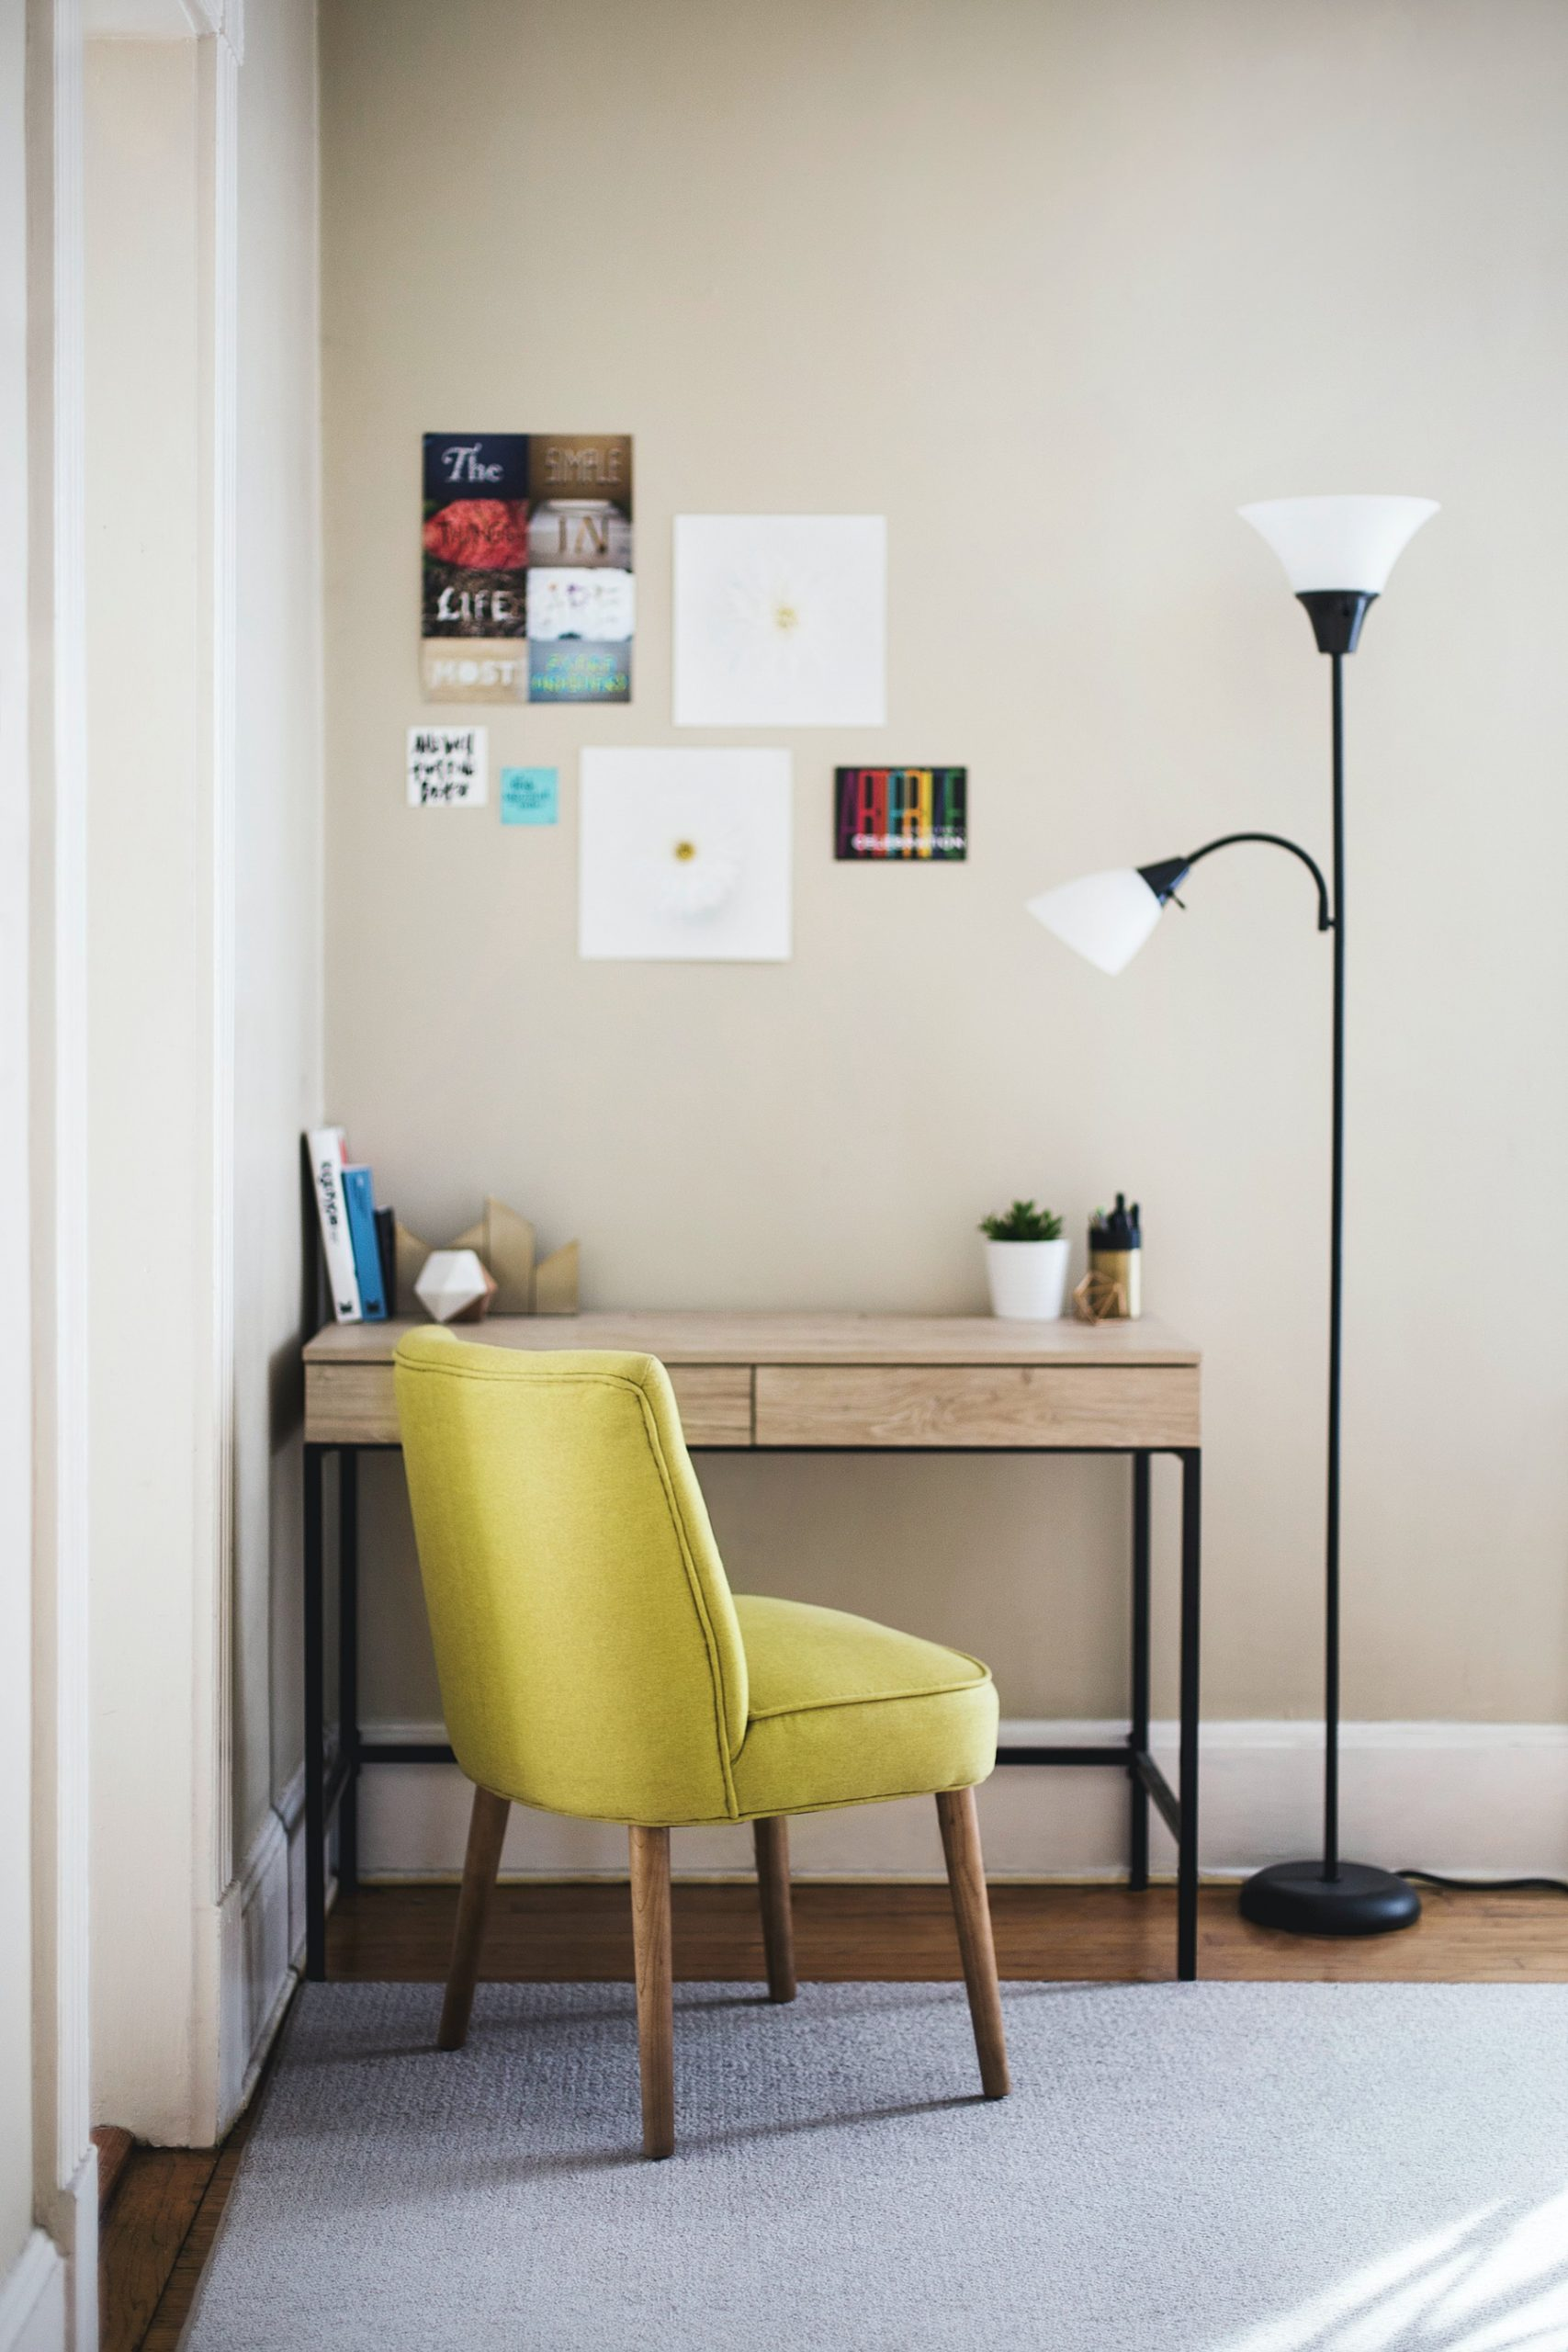 Small desk in corner with comfy chair in a pop of color and simple lighting